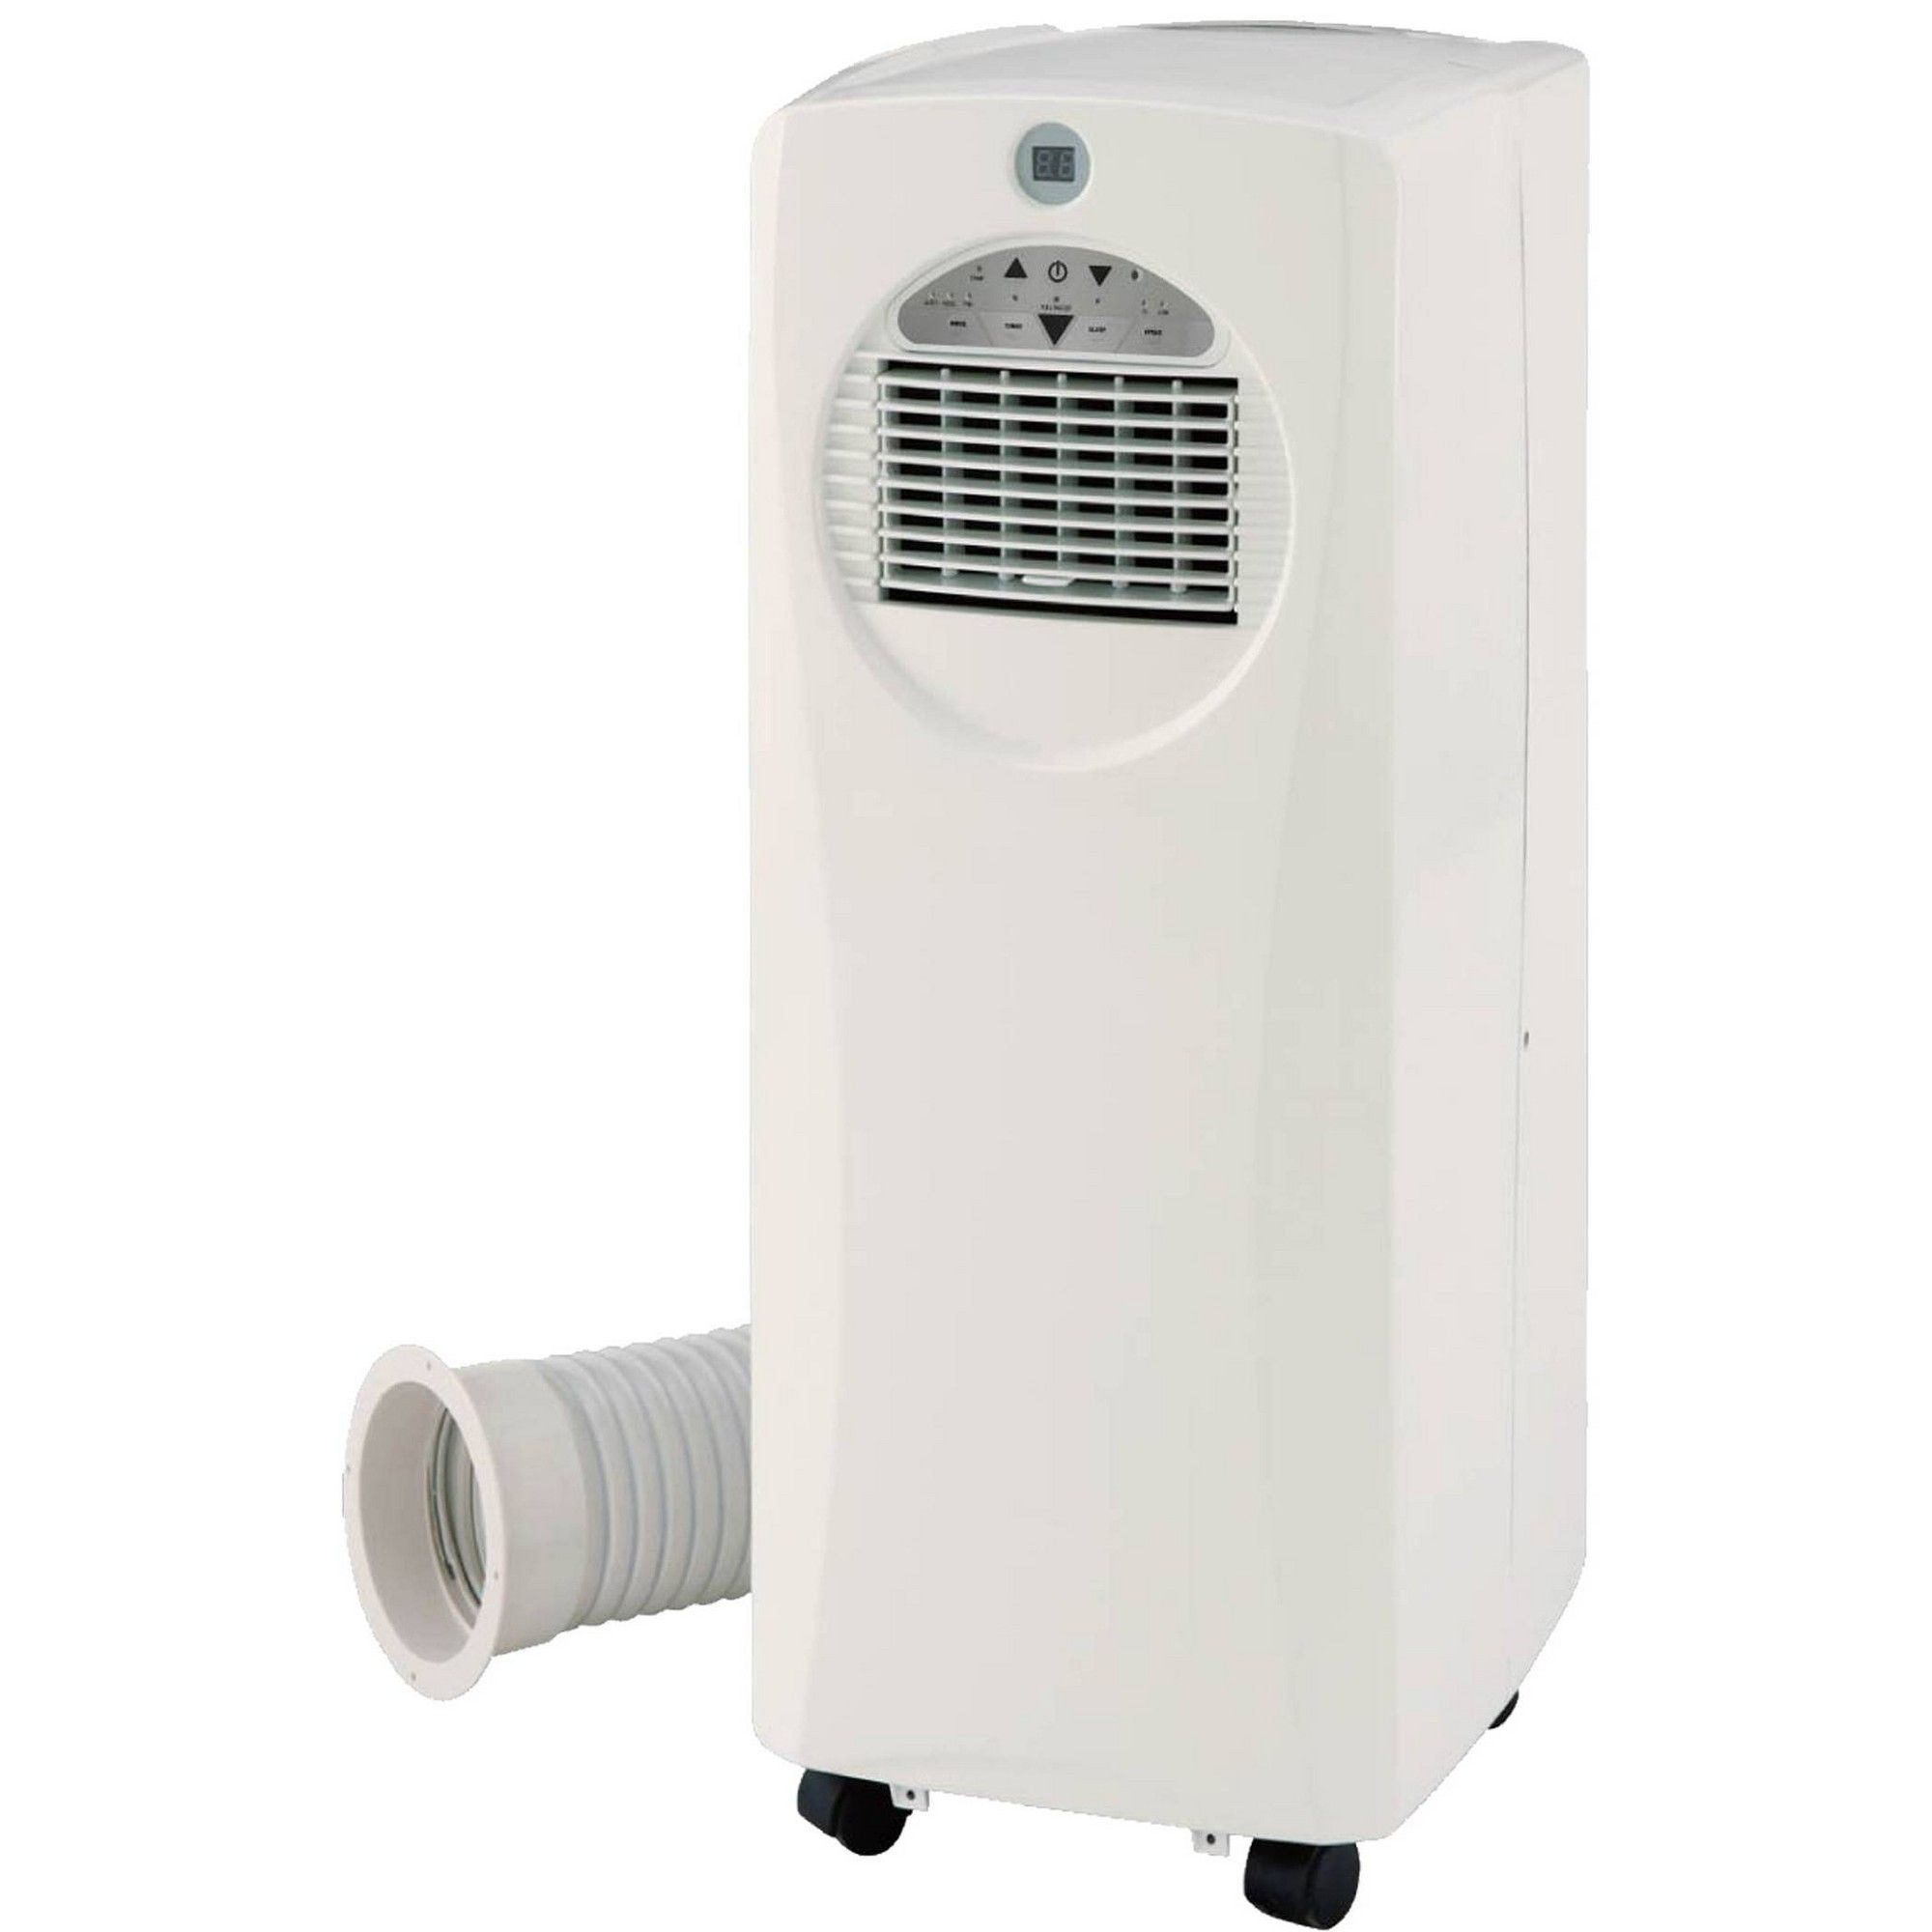 Sunpentown 9000 BTU Portable Oscillating Air Conditioner